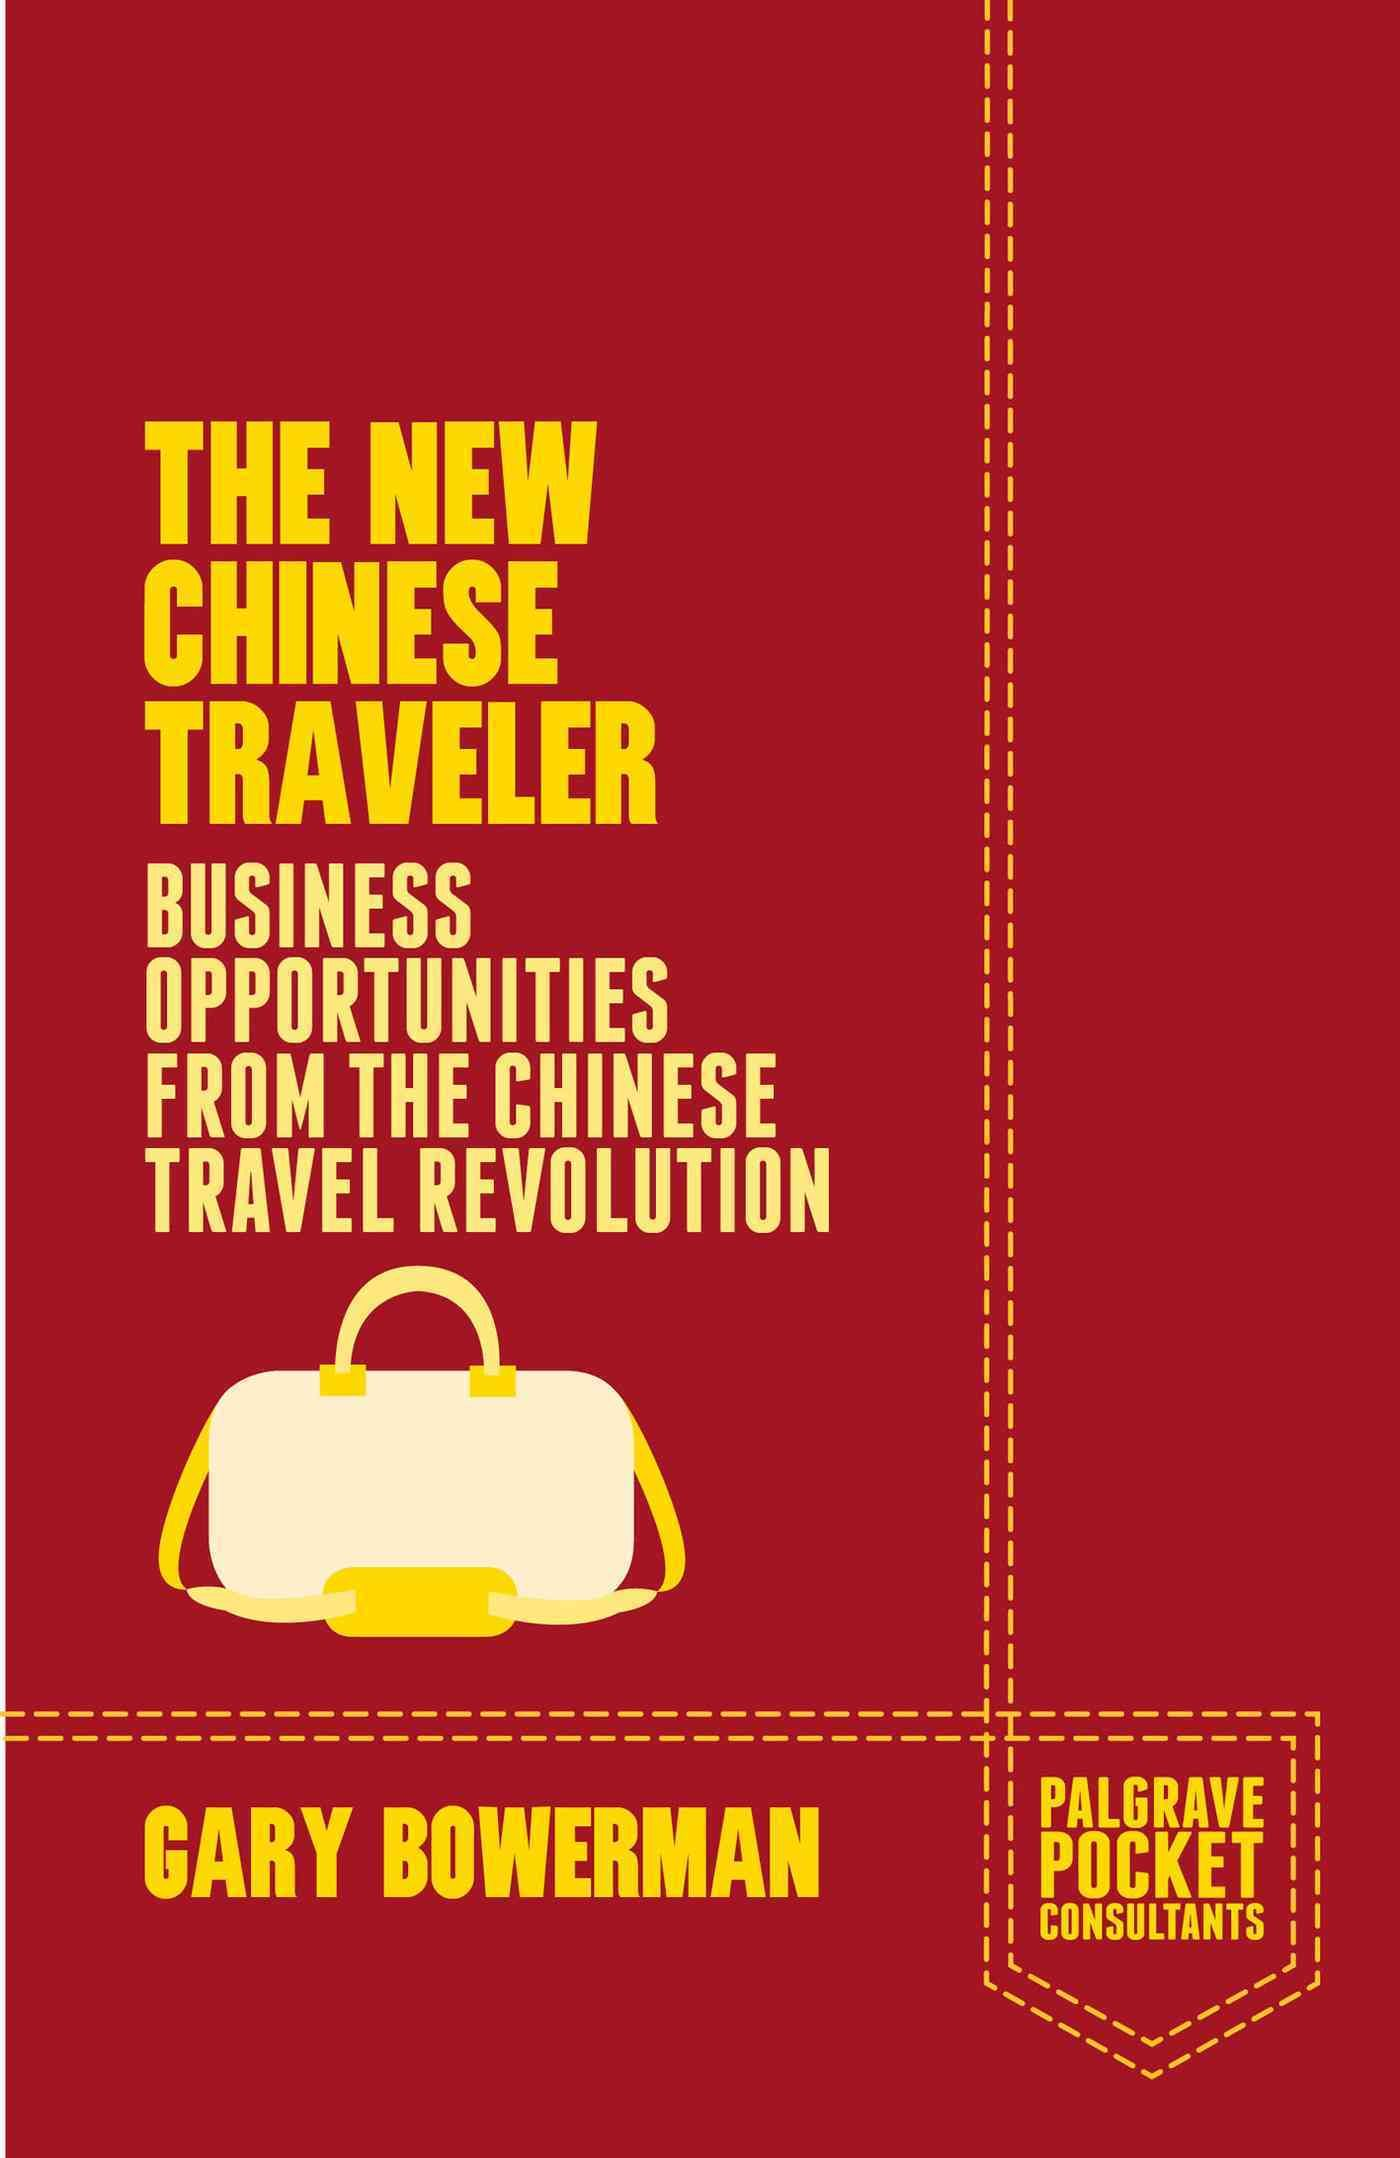 The New Chinese Traveler: Business Opportunities from the Chinese Travel Revolution